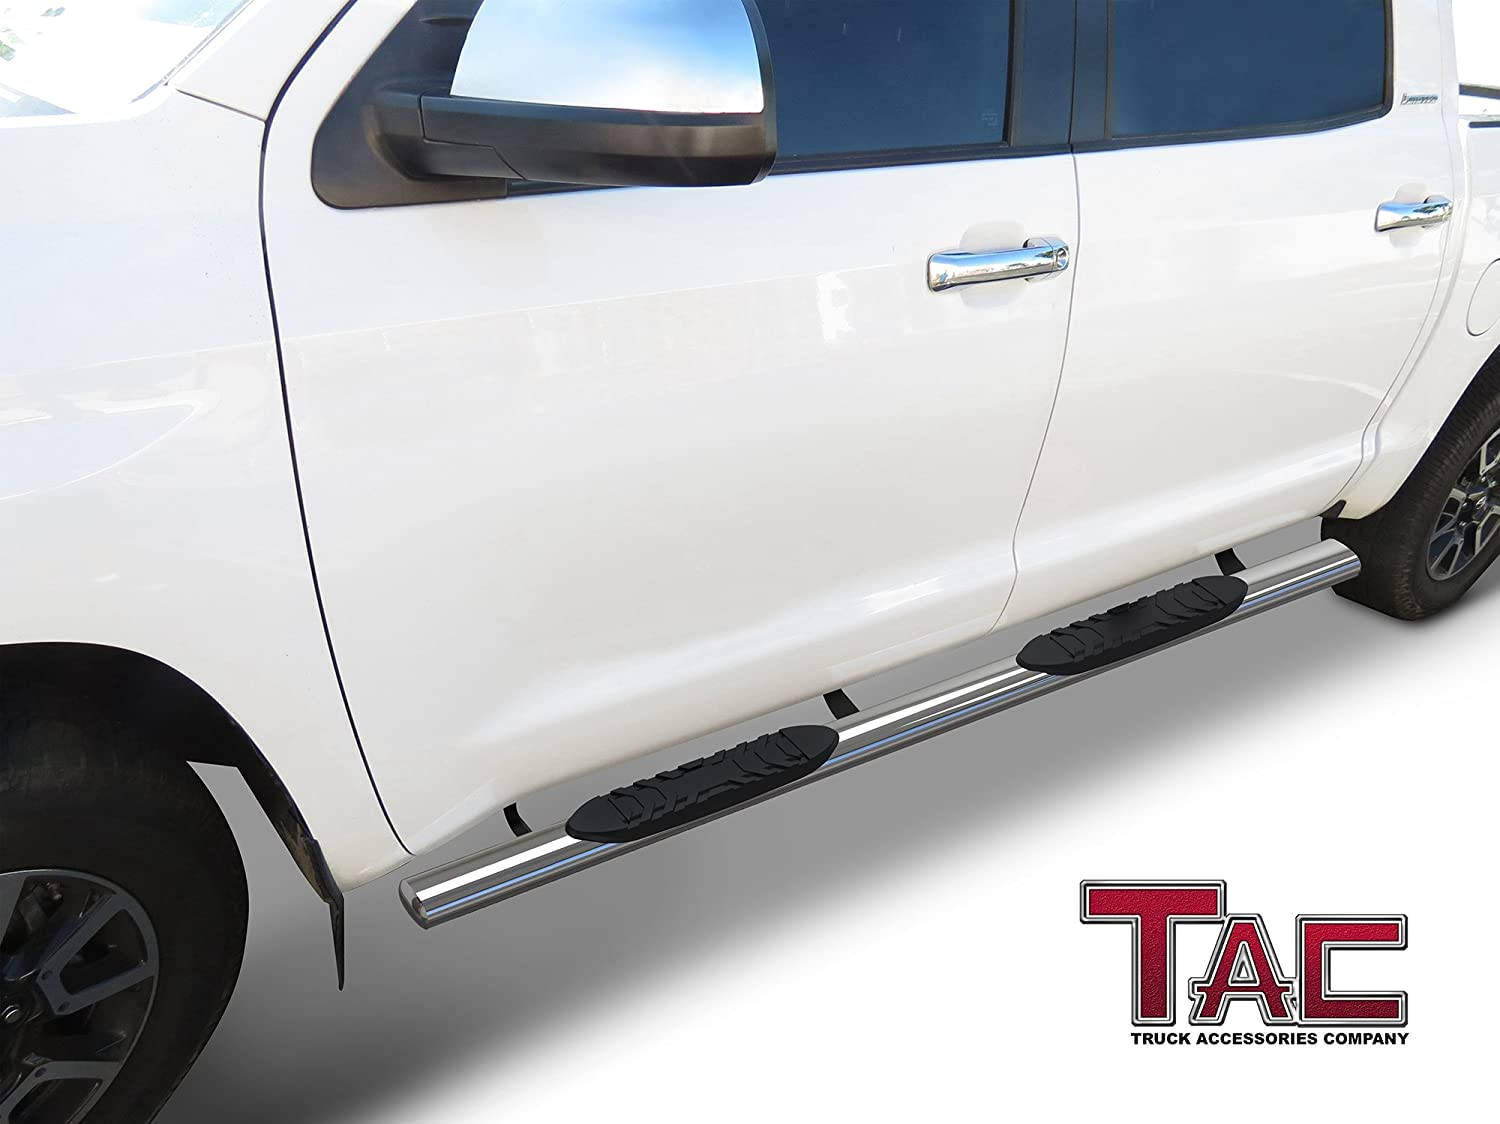 2 Pieces Running Boards TAC Side Steps Fit 2007-2019 Toyota Tundra Crew Max Cab 5 Oval Tube Stainless Steel Side Bars Nerf Bars Running Boards Rock Panel Off Road Exterior Accessories